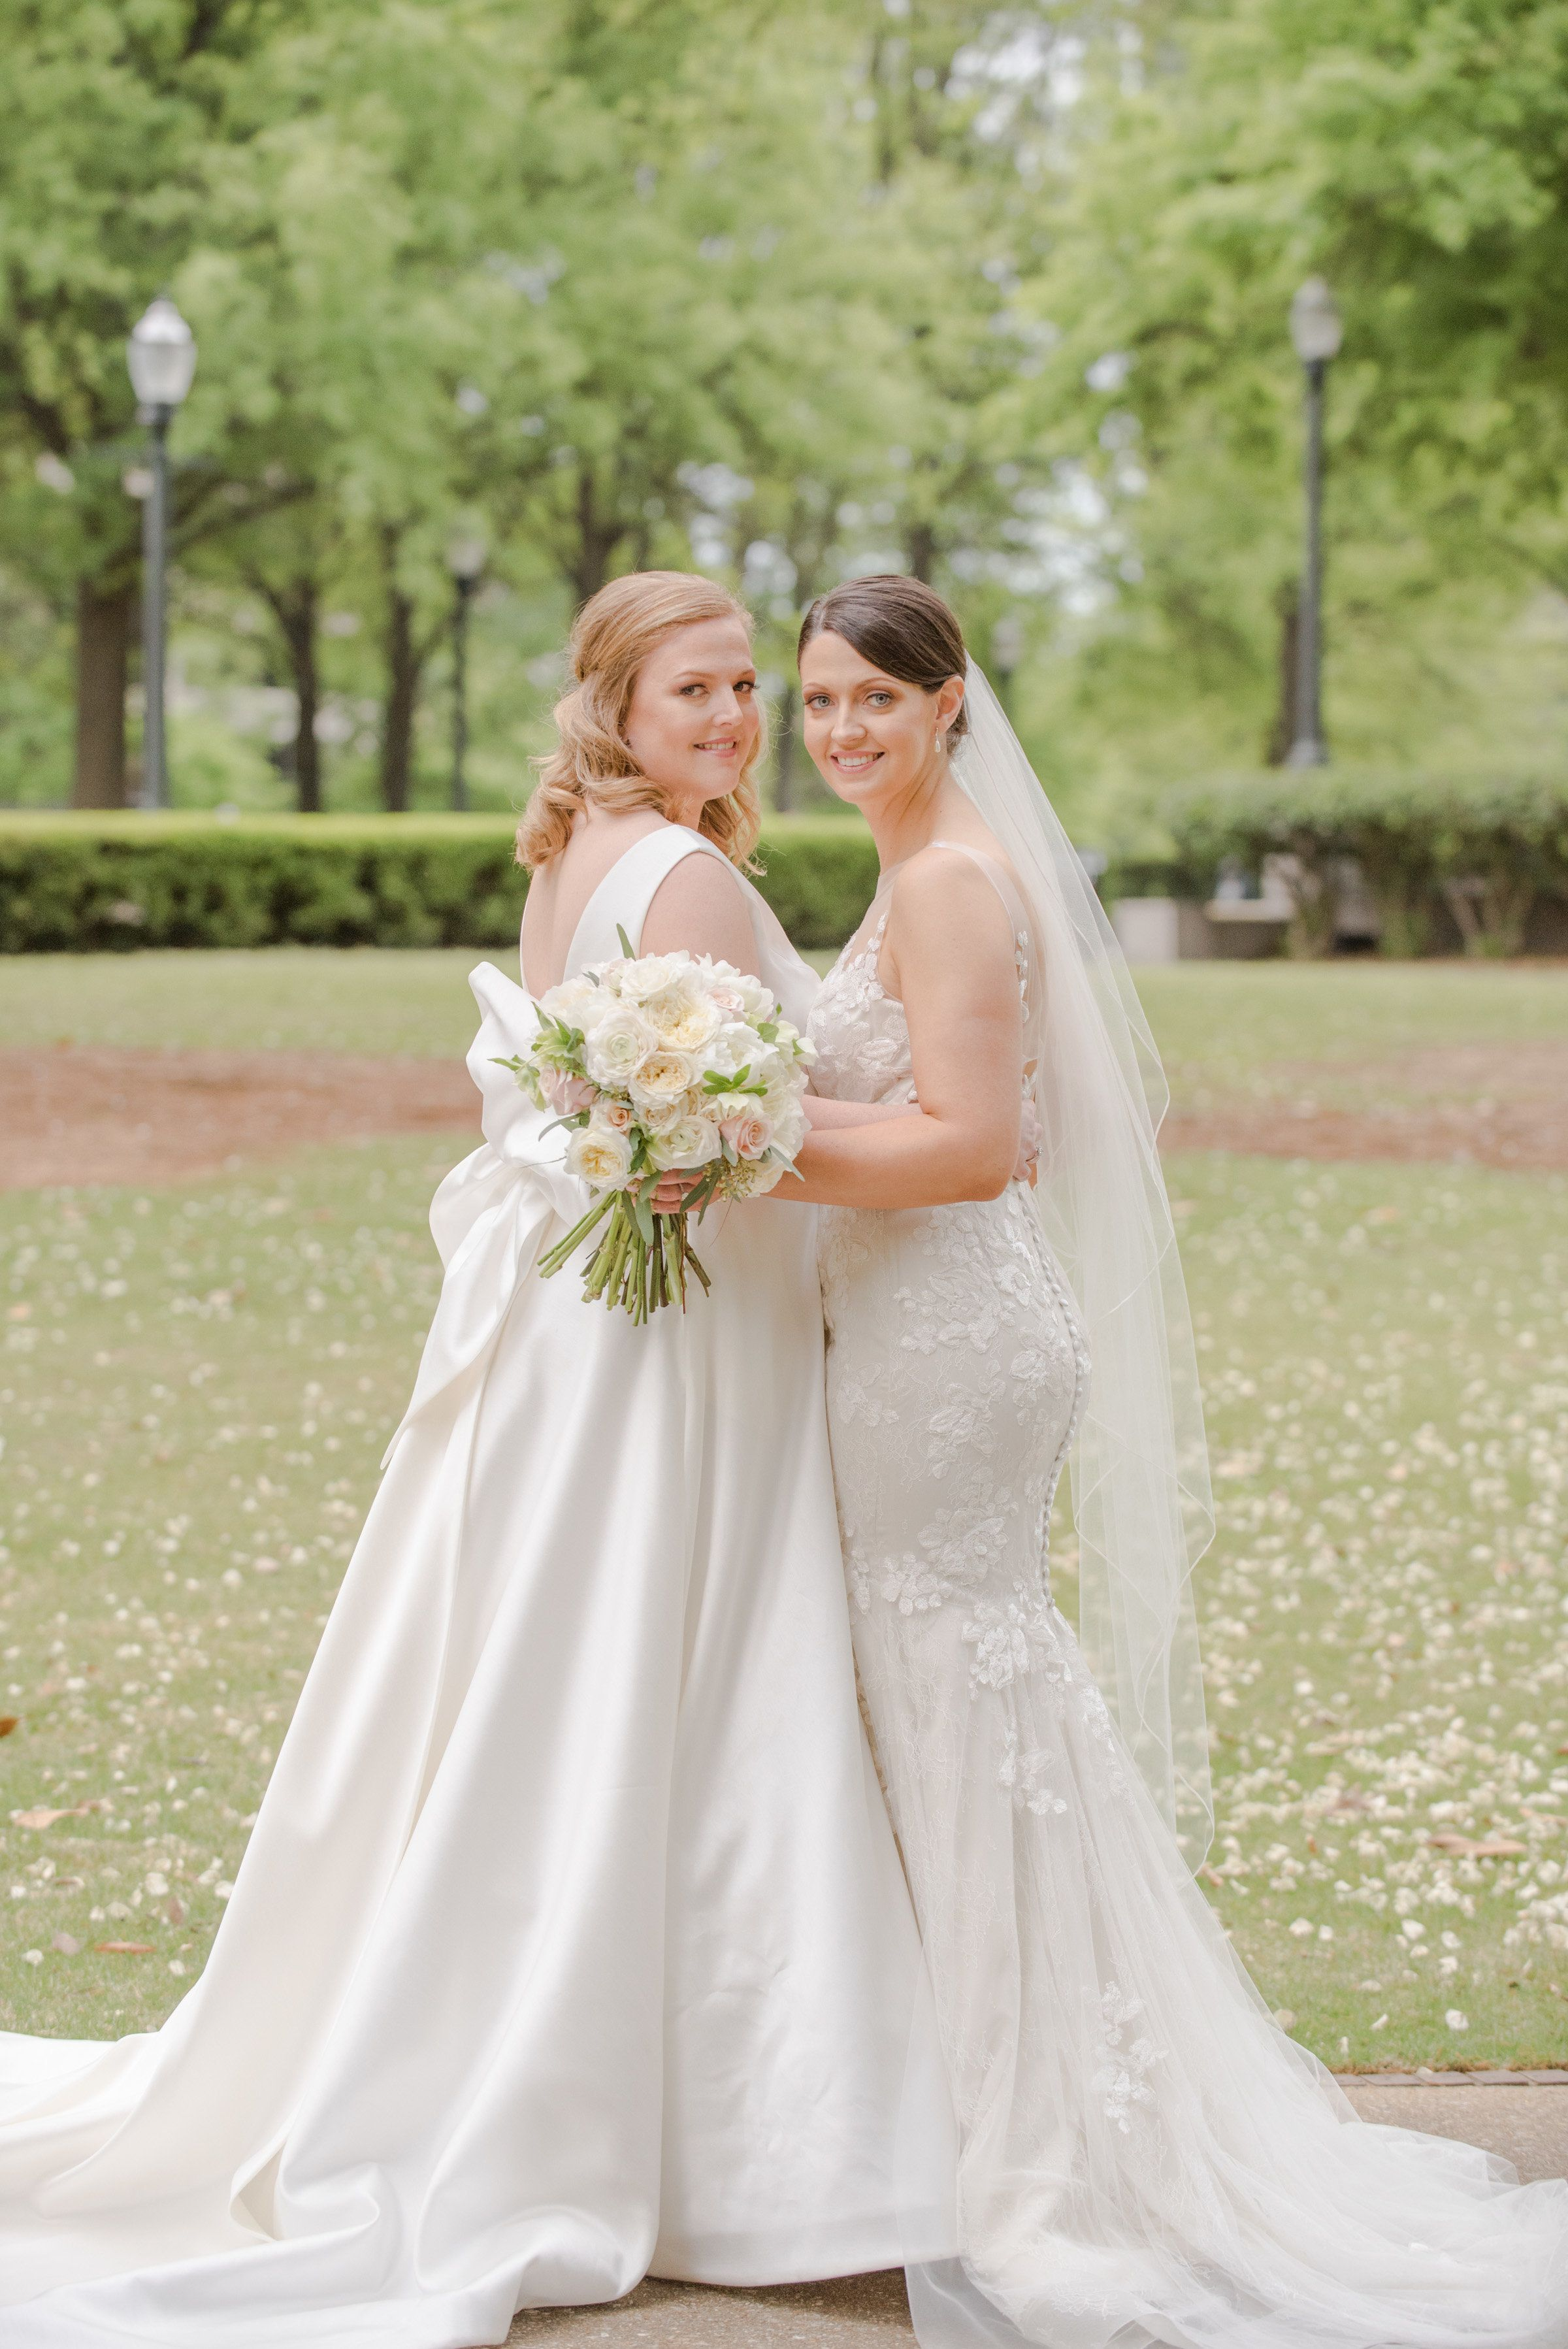 Deidre Downs Gunn (right) married Abbott Jones at Alabama's Birmingham Museum of Art on April 14.